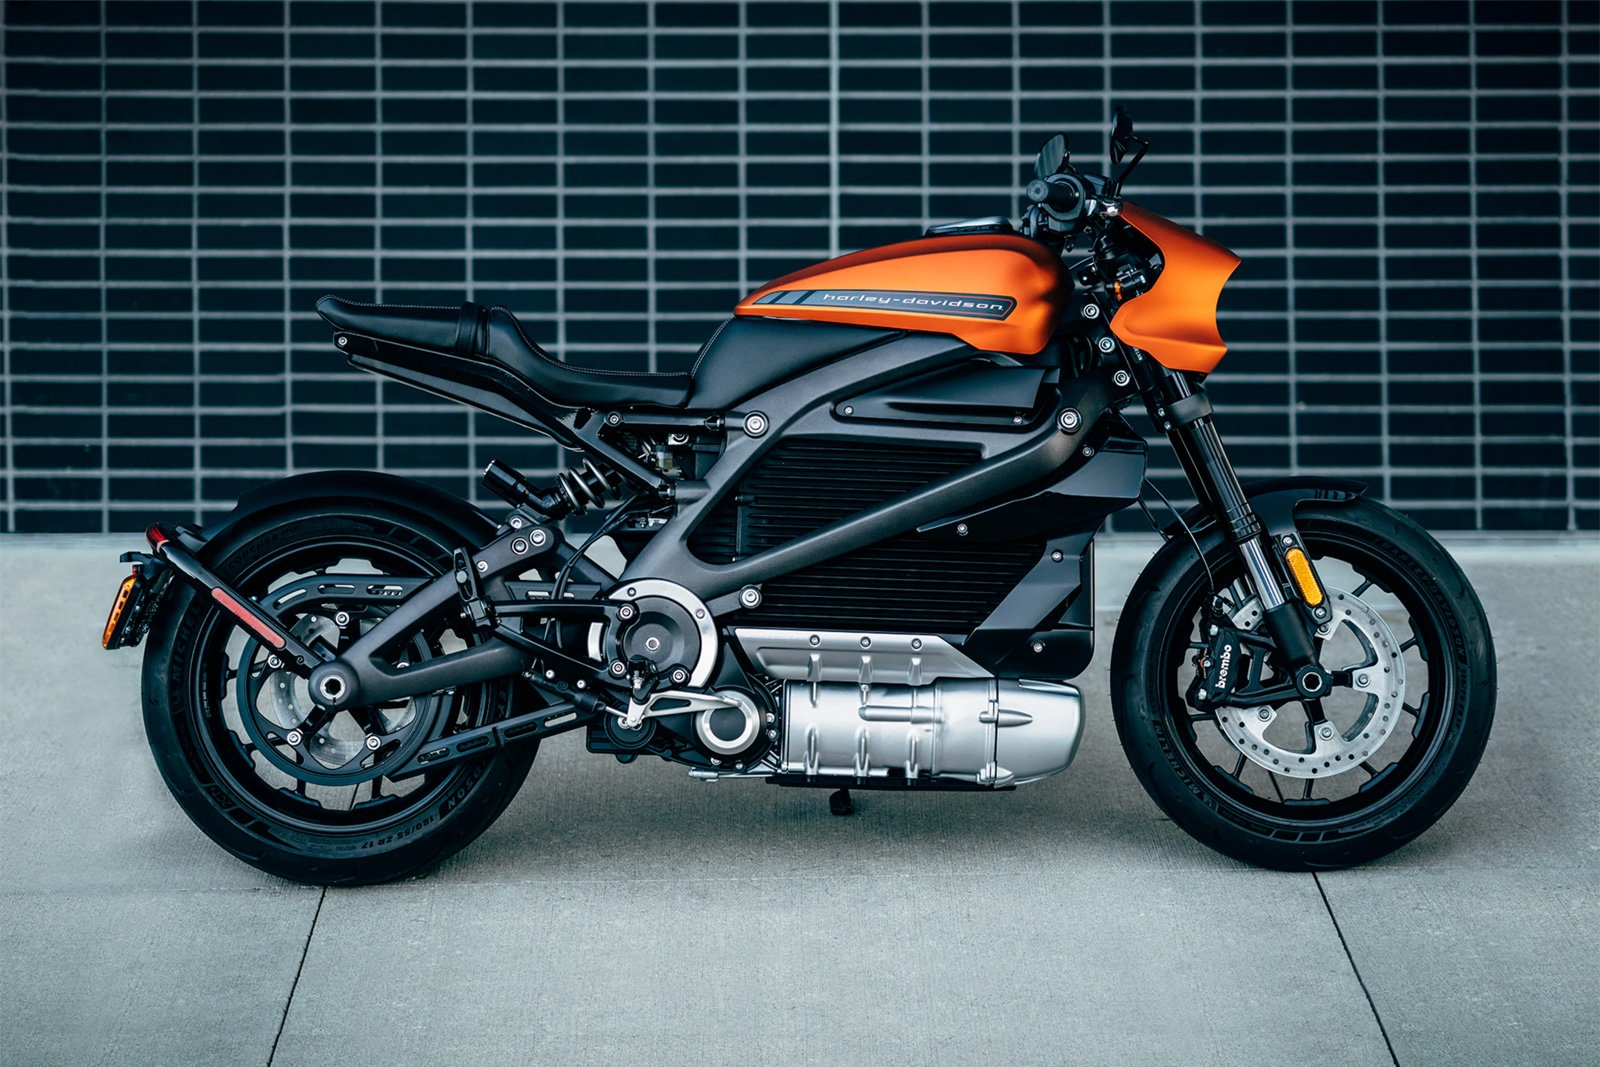 Harley-Davidson's first electric motorcycle arrives in August for $30K | DeviceDaily.com